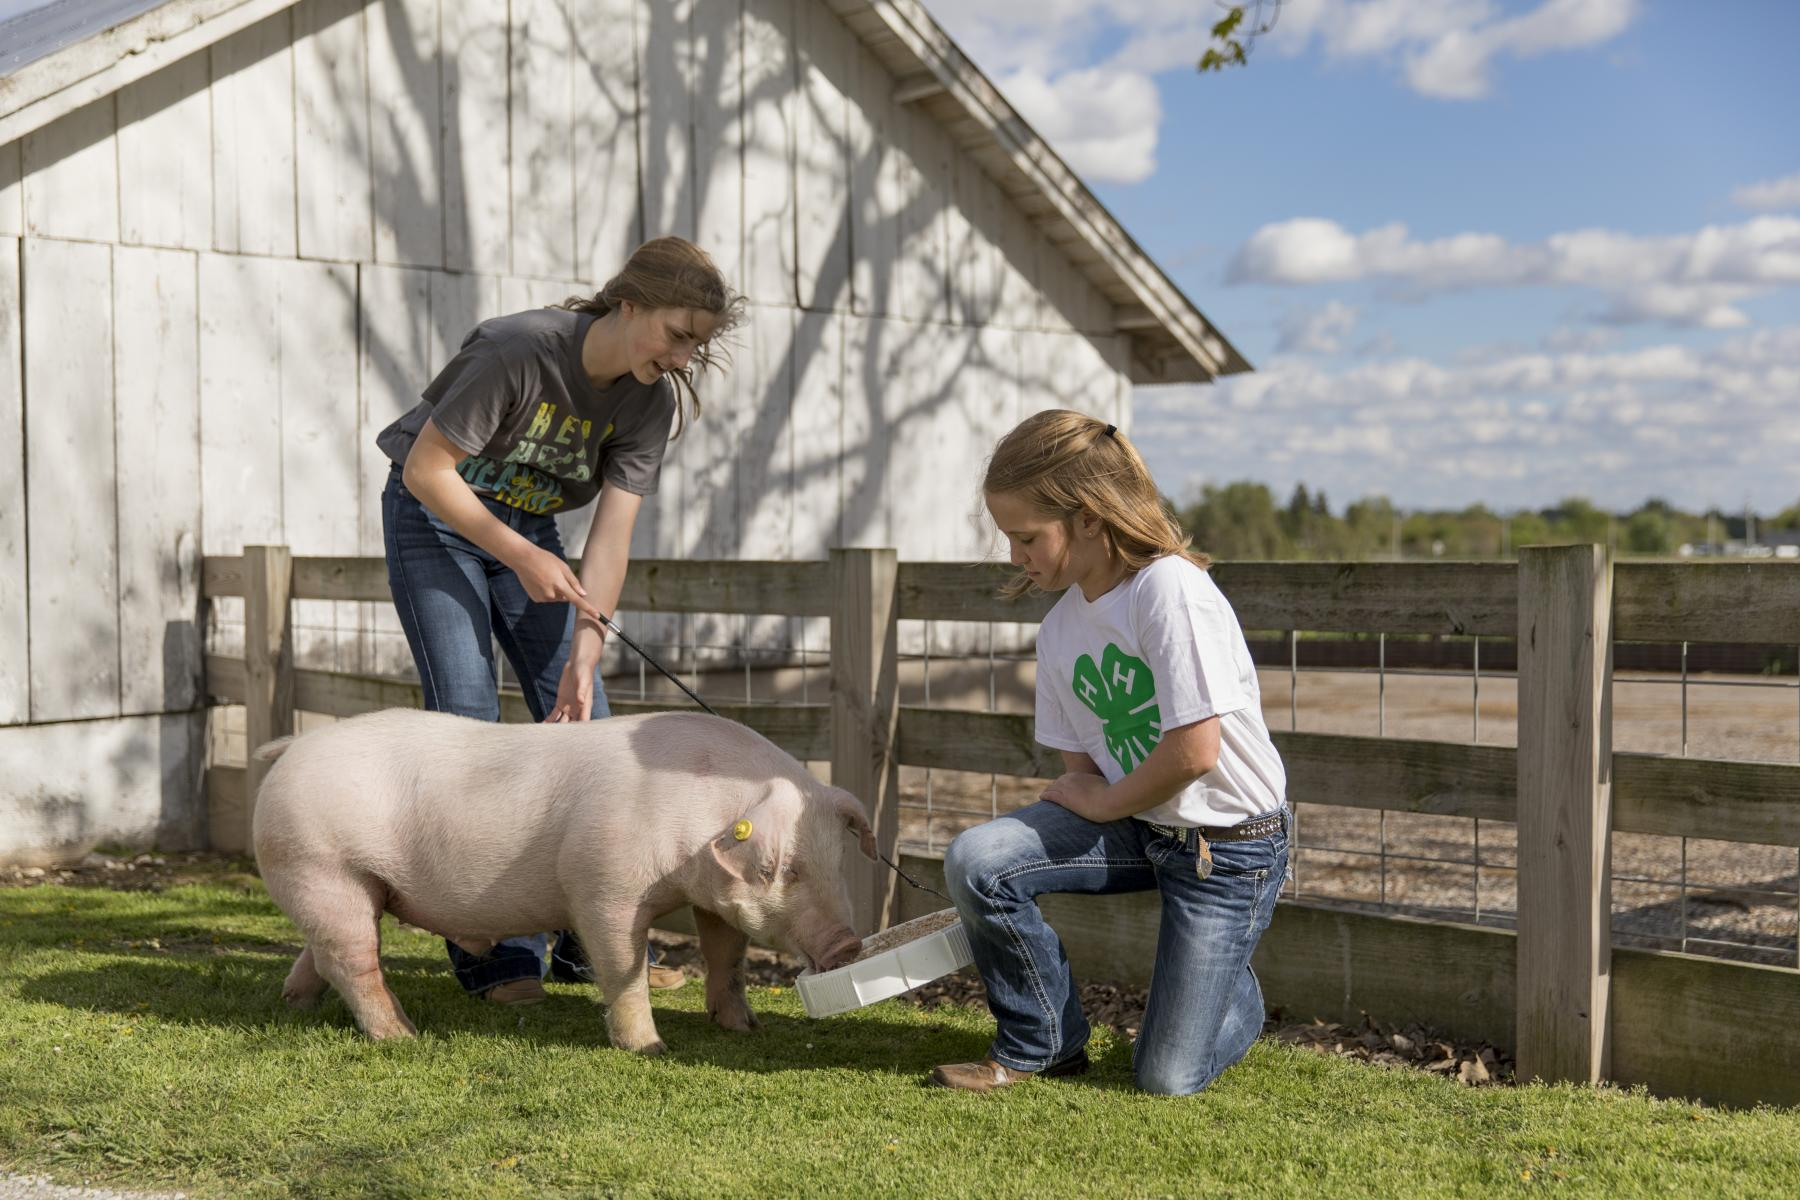 4-H members working with a show pig